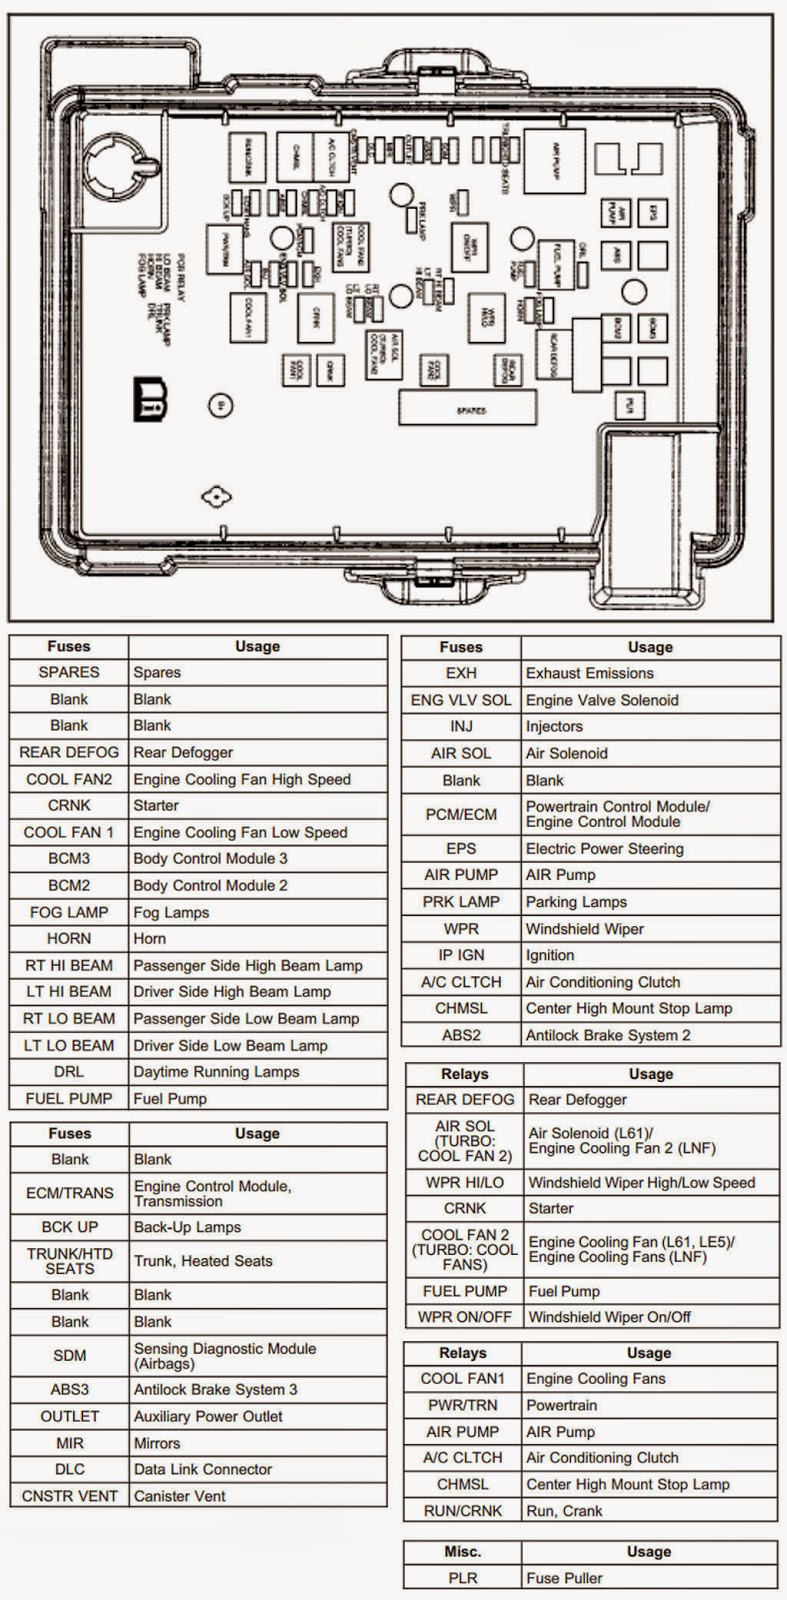 2005 chevy cobalt fuse box wiring diagram schematics ford focus fuse box 08 cobalt fuse box [ 787 x 1600 Pixel ]